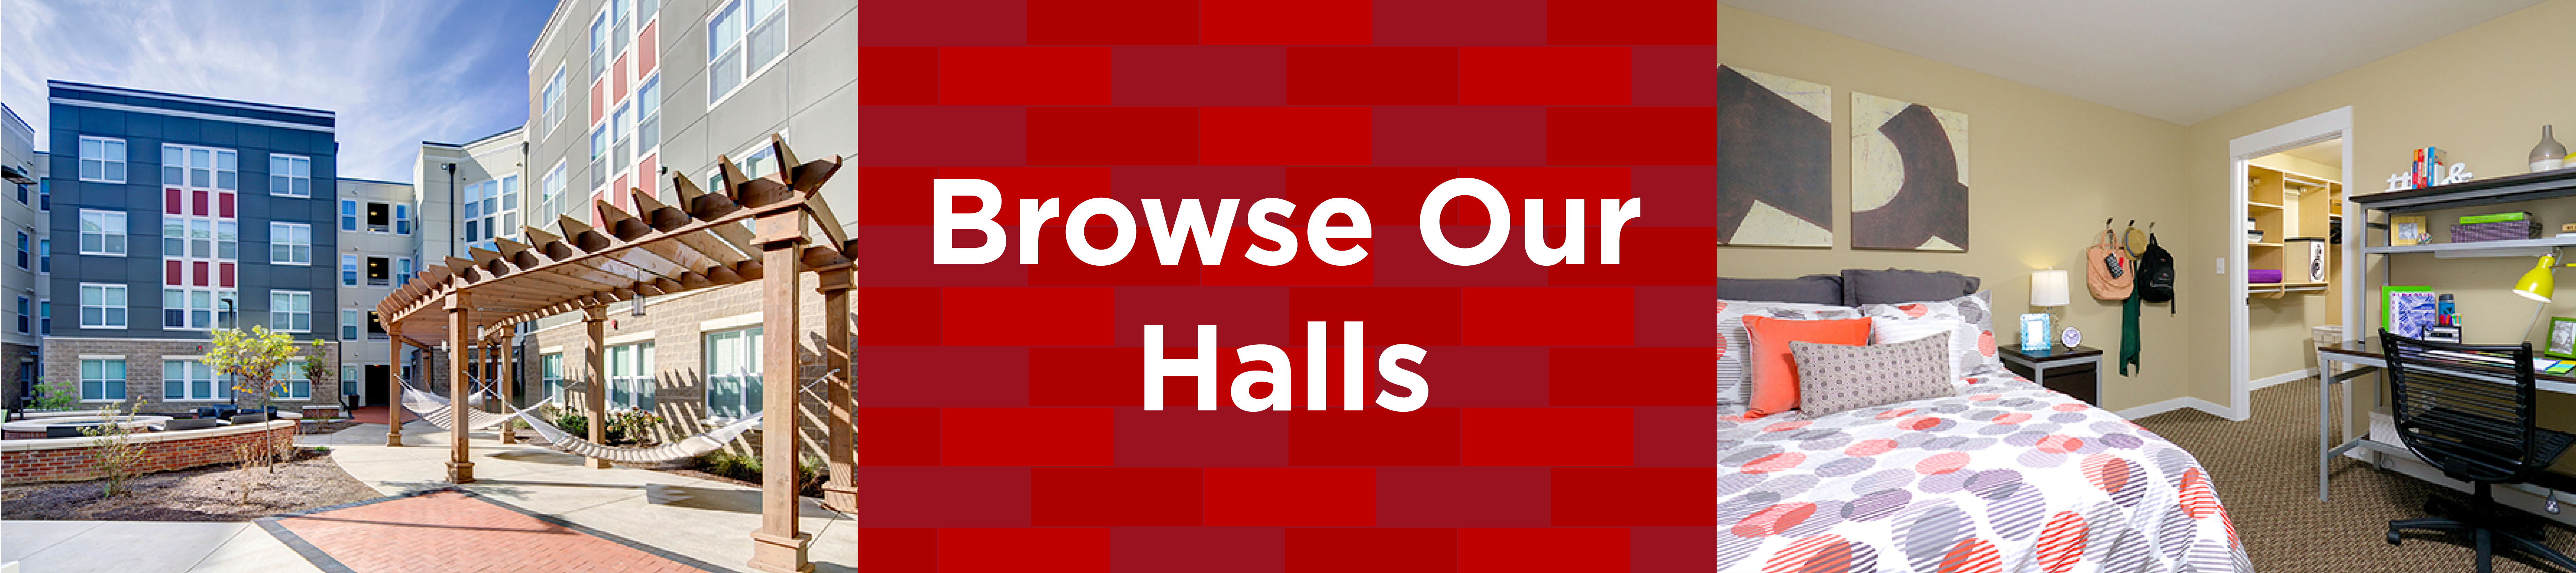 browse our halls